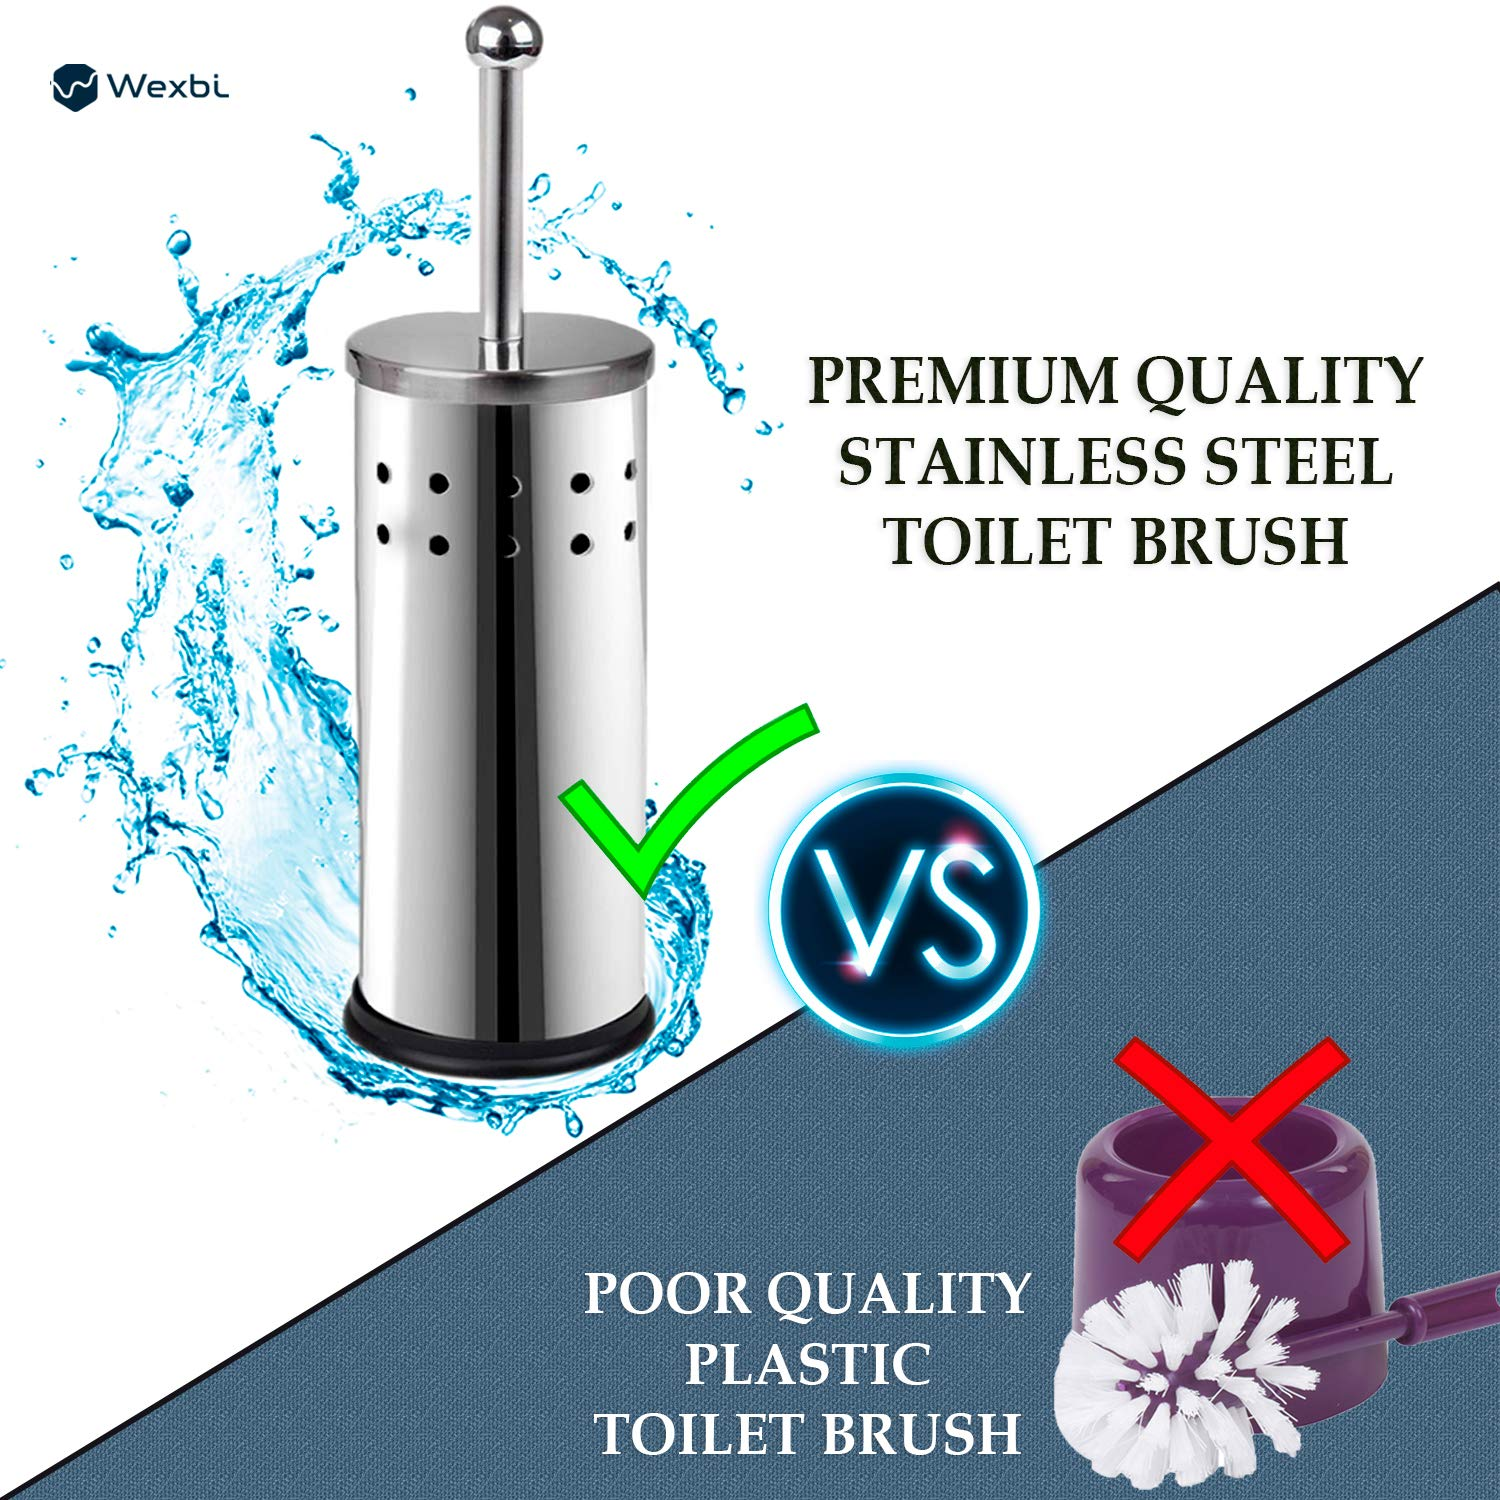 Wexbi Toilet Brush, Durable Stainless Steel Toilet Brush, Elegant Toilet Brush and Holder, Perfect Toilet Bowl Cleaner Brush, Indispensable Part of Bathroom Accessories